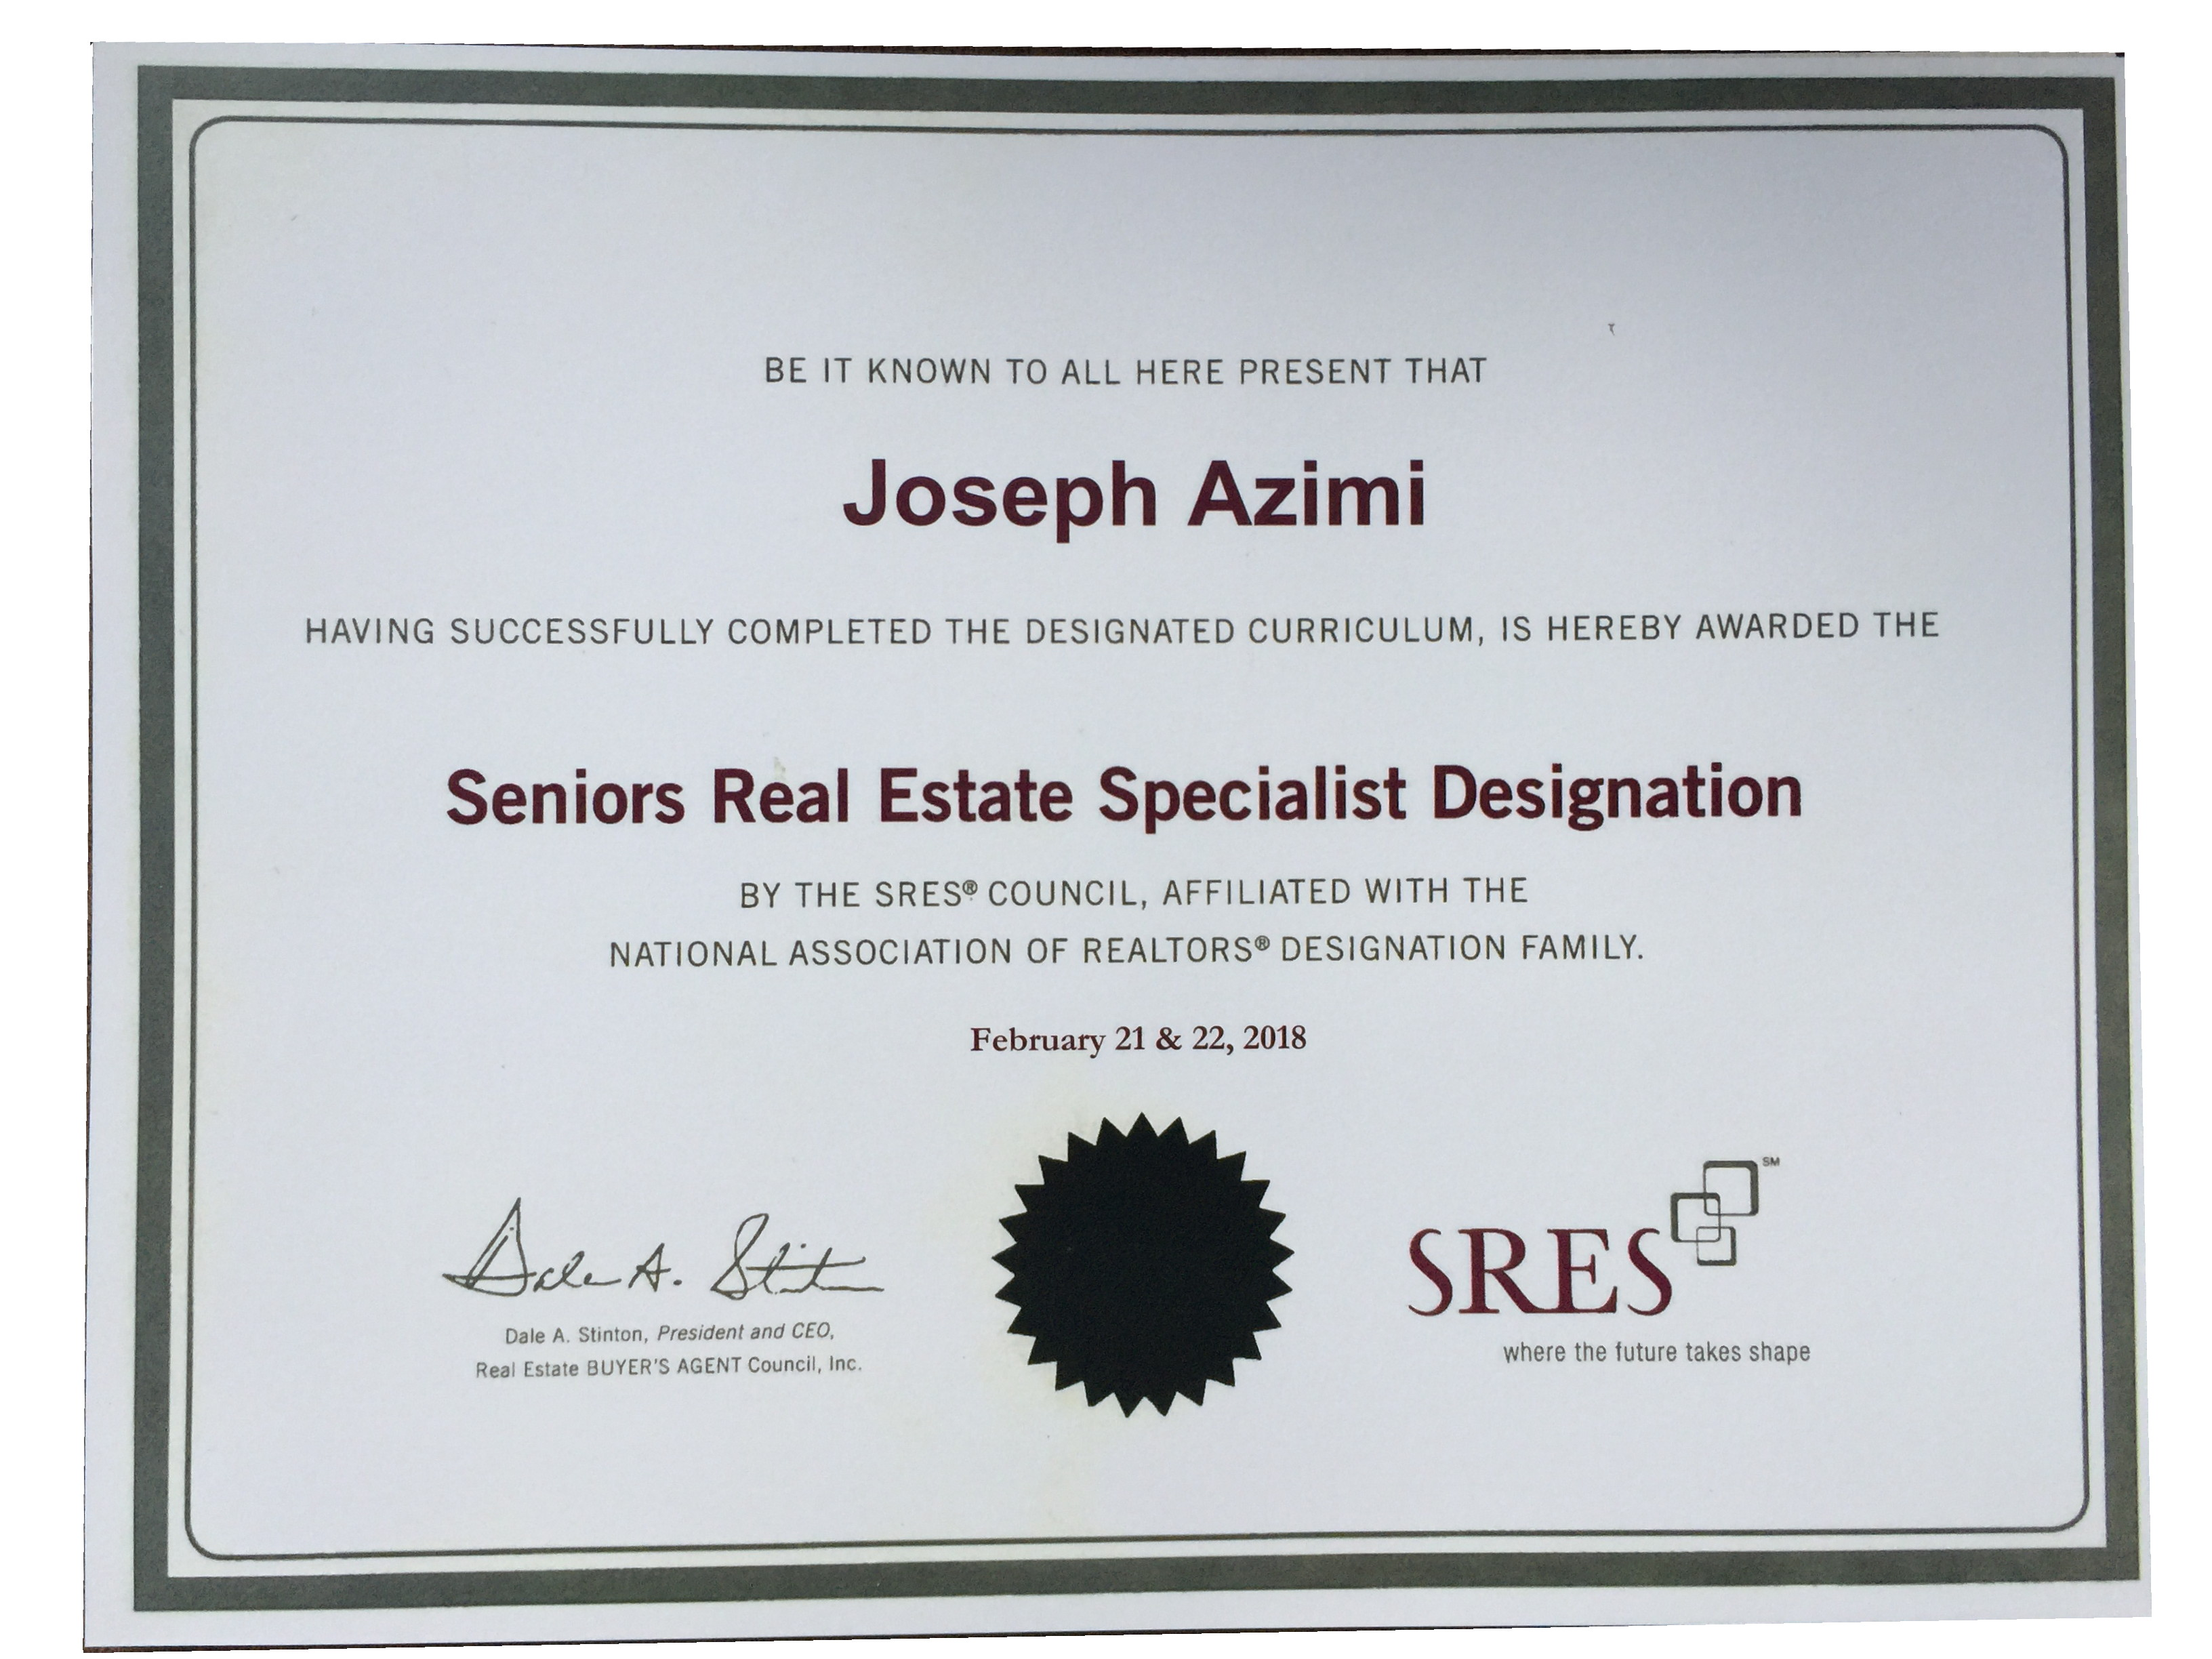 SRES, JOSEPH, AZIMI, TOP, CERTIFIED, SENIORS, REAL, ESTATE, REAL ESTATE, SPECIALIST, EXPERT, SENIORS REAL ESTATE SPECIALIST, IN, TORONTO, VAUGHAN, KLEINBURG, OAKVILLE, RICHMOND HILL, MISSISSAUGA, MARKHAM, BRAMPTON, MILTON, CALEDON, HALTON HILLS, REMAX, REMAX SENIORS REAL ESTATE SPECIALIST, REMAX SRES TORONTO, TOP SENIORS REAL ESTATE SPECIALIST, BEST SENIORS REAL ESTATE SPECIALIST.